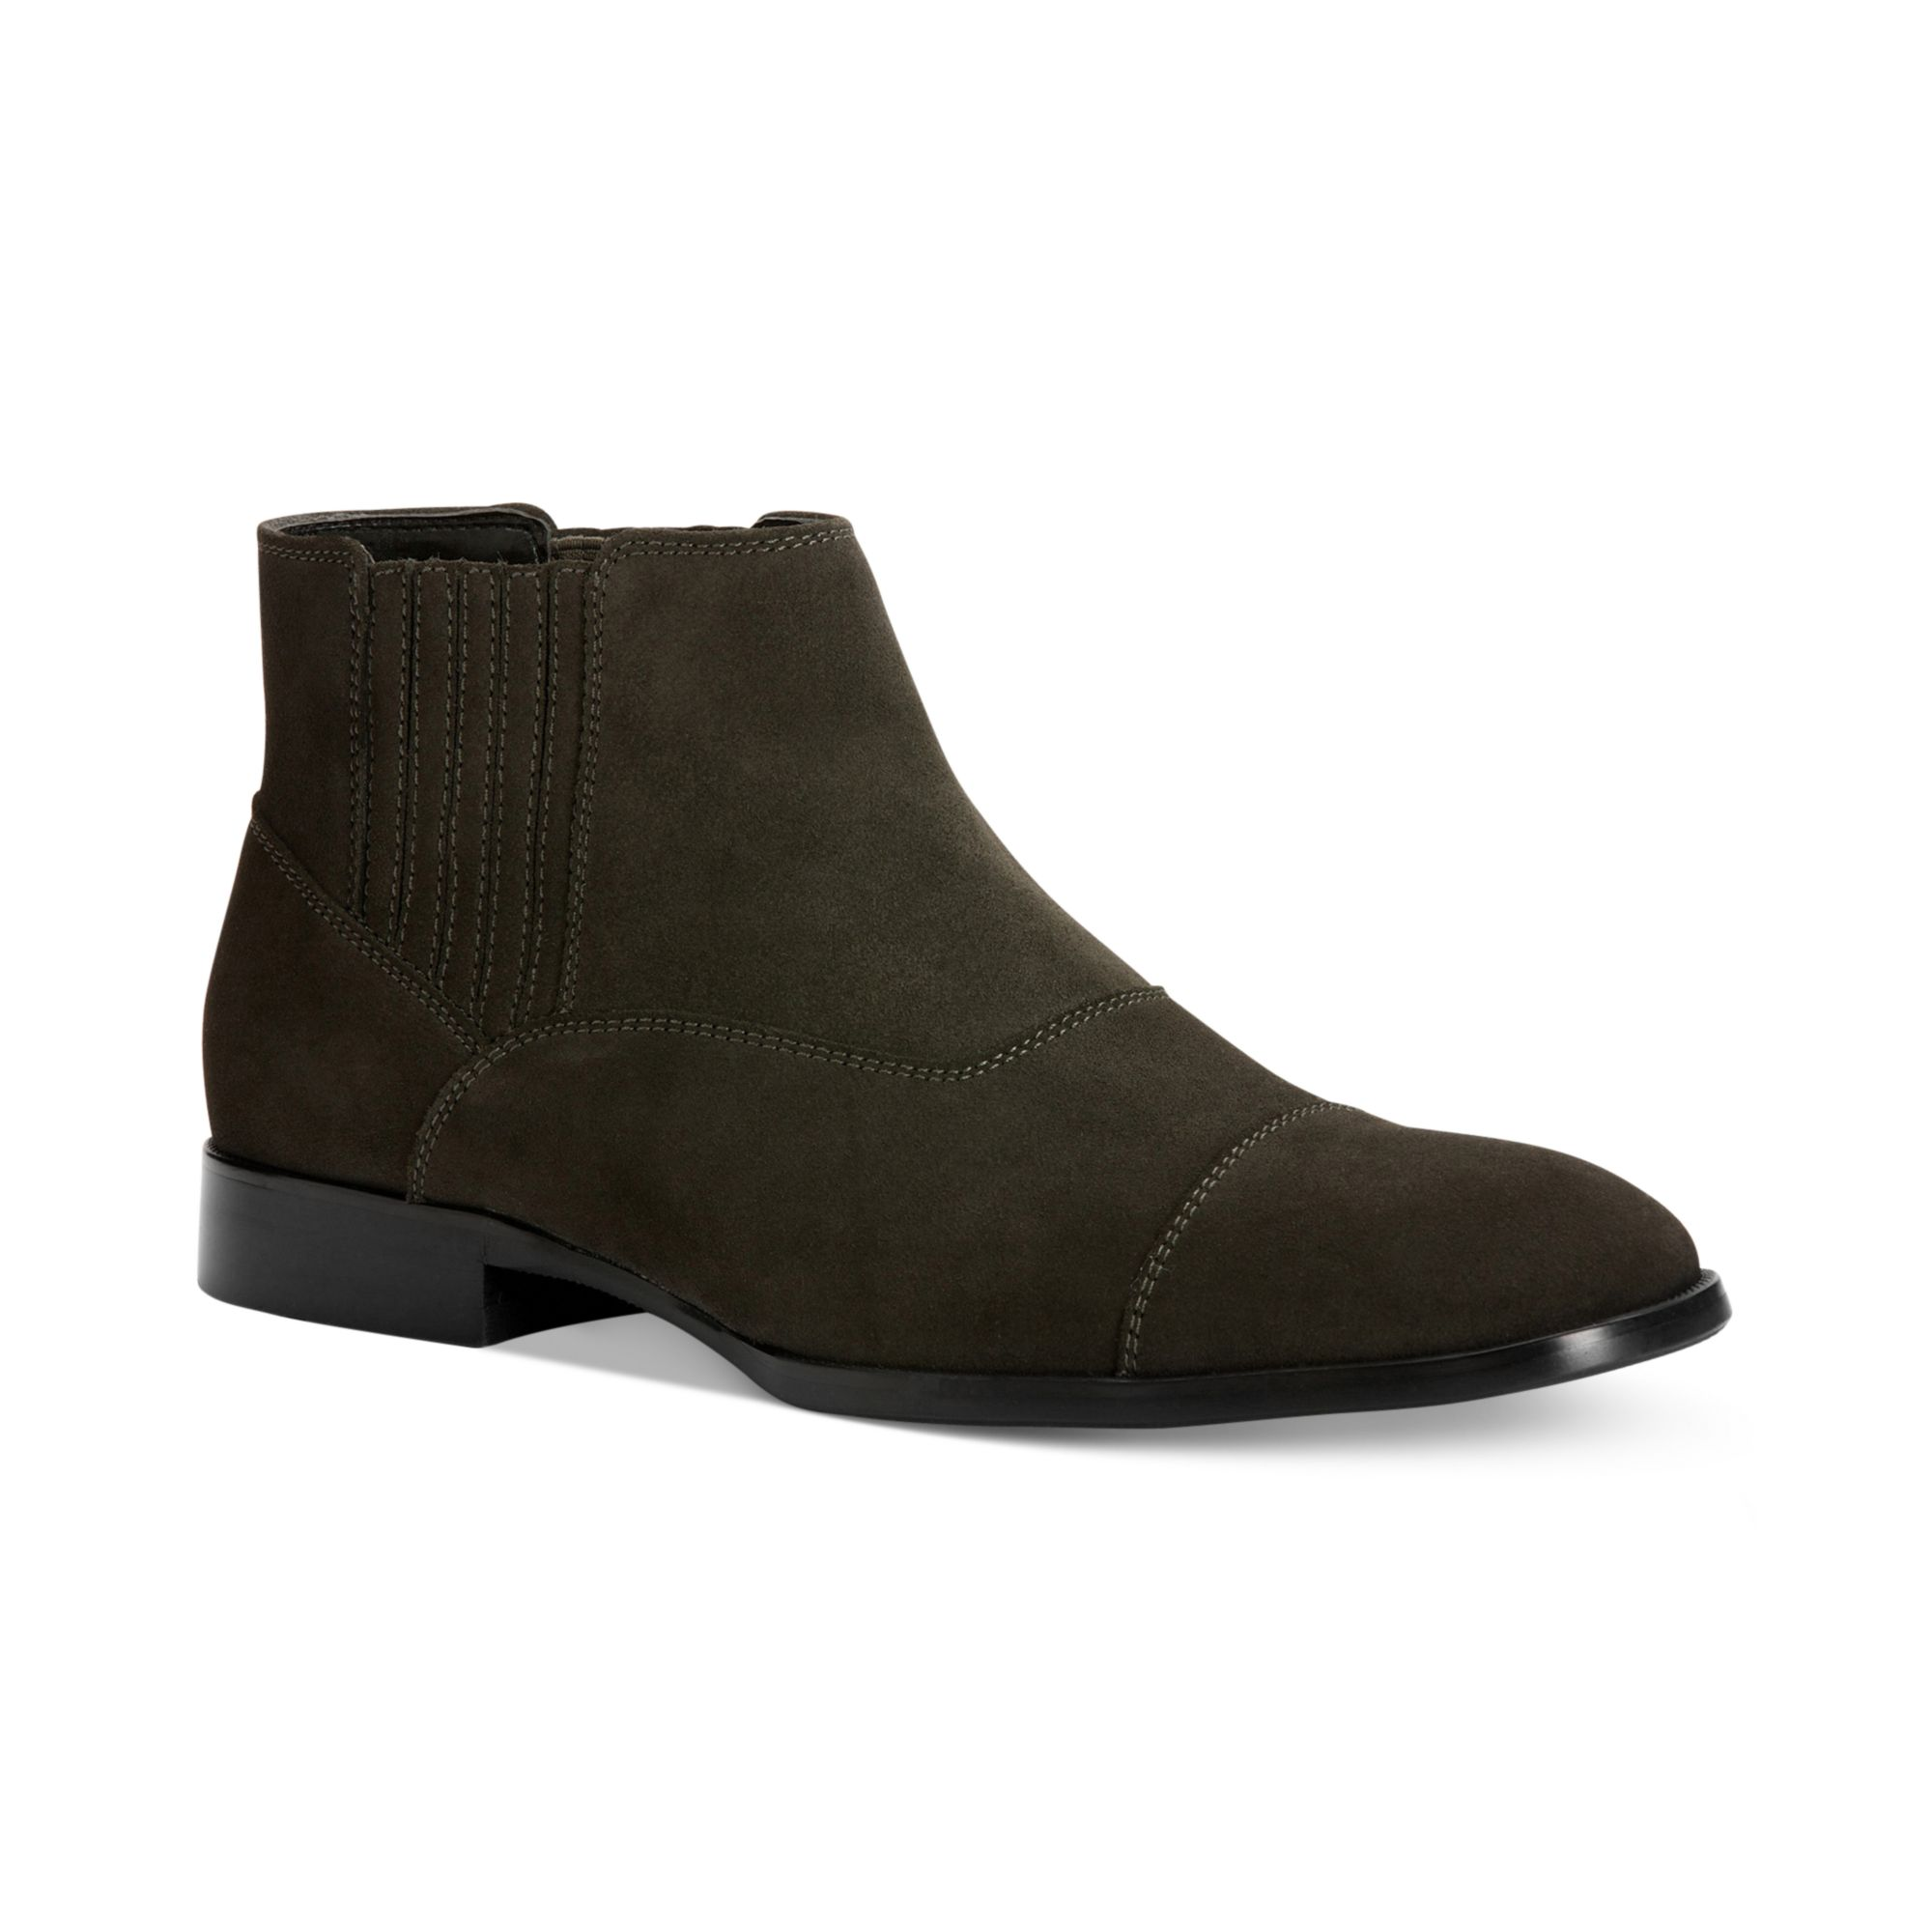 Macy's women's ugg boots keyword after analyzing the system lists the list of keywords related and the list of websites with related content, in addition you can see which keywords most interested customers on the this website.